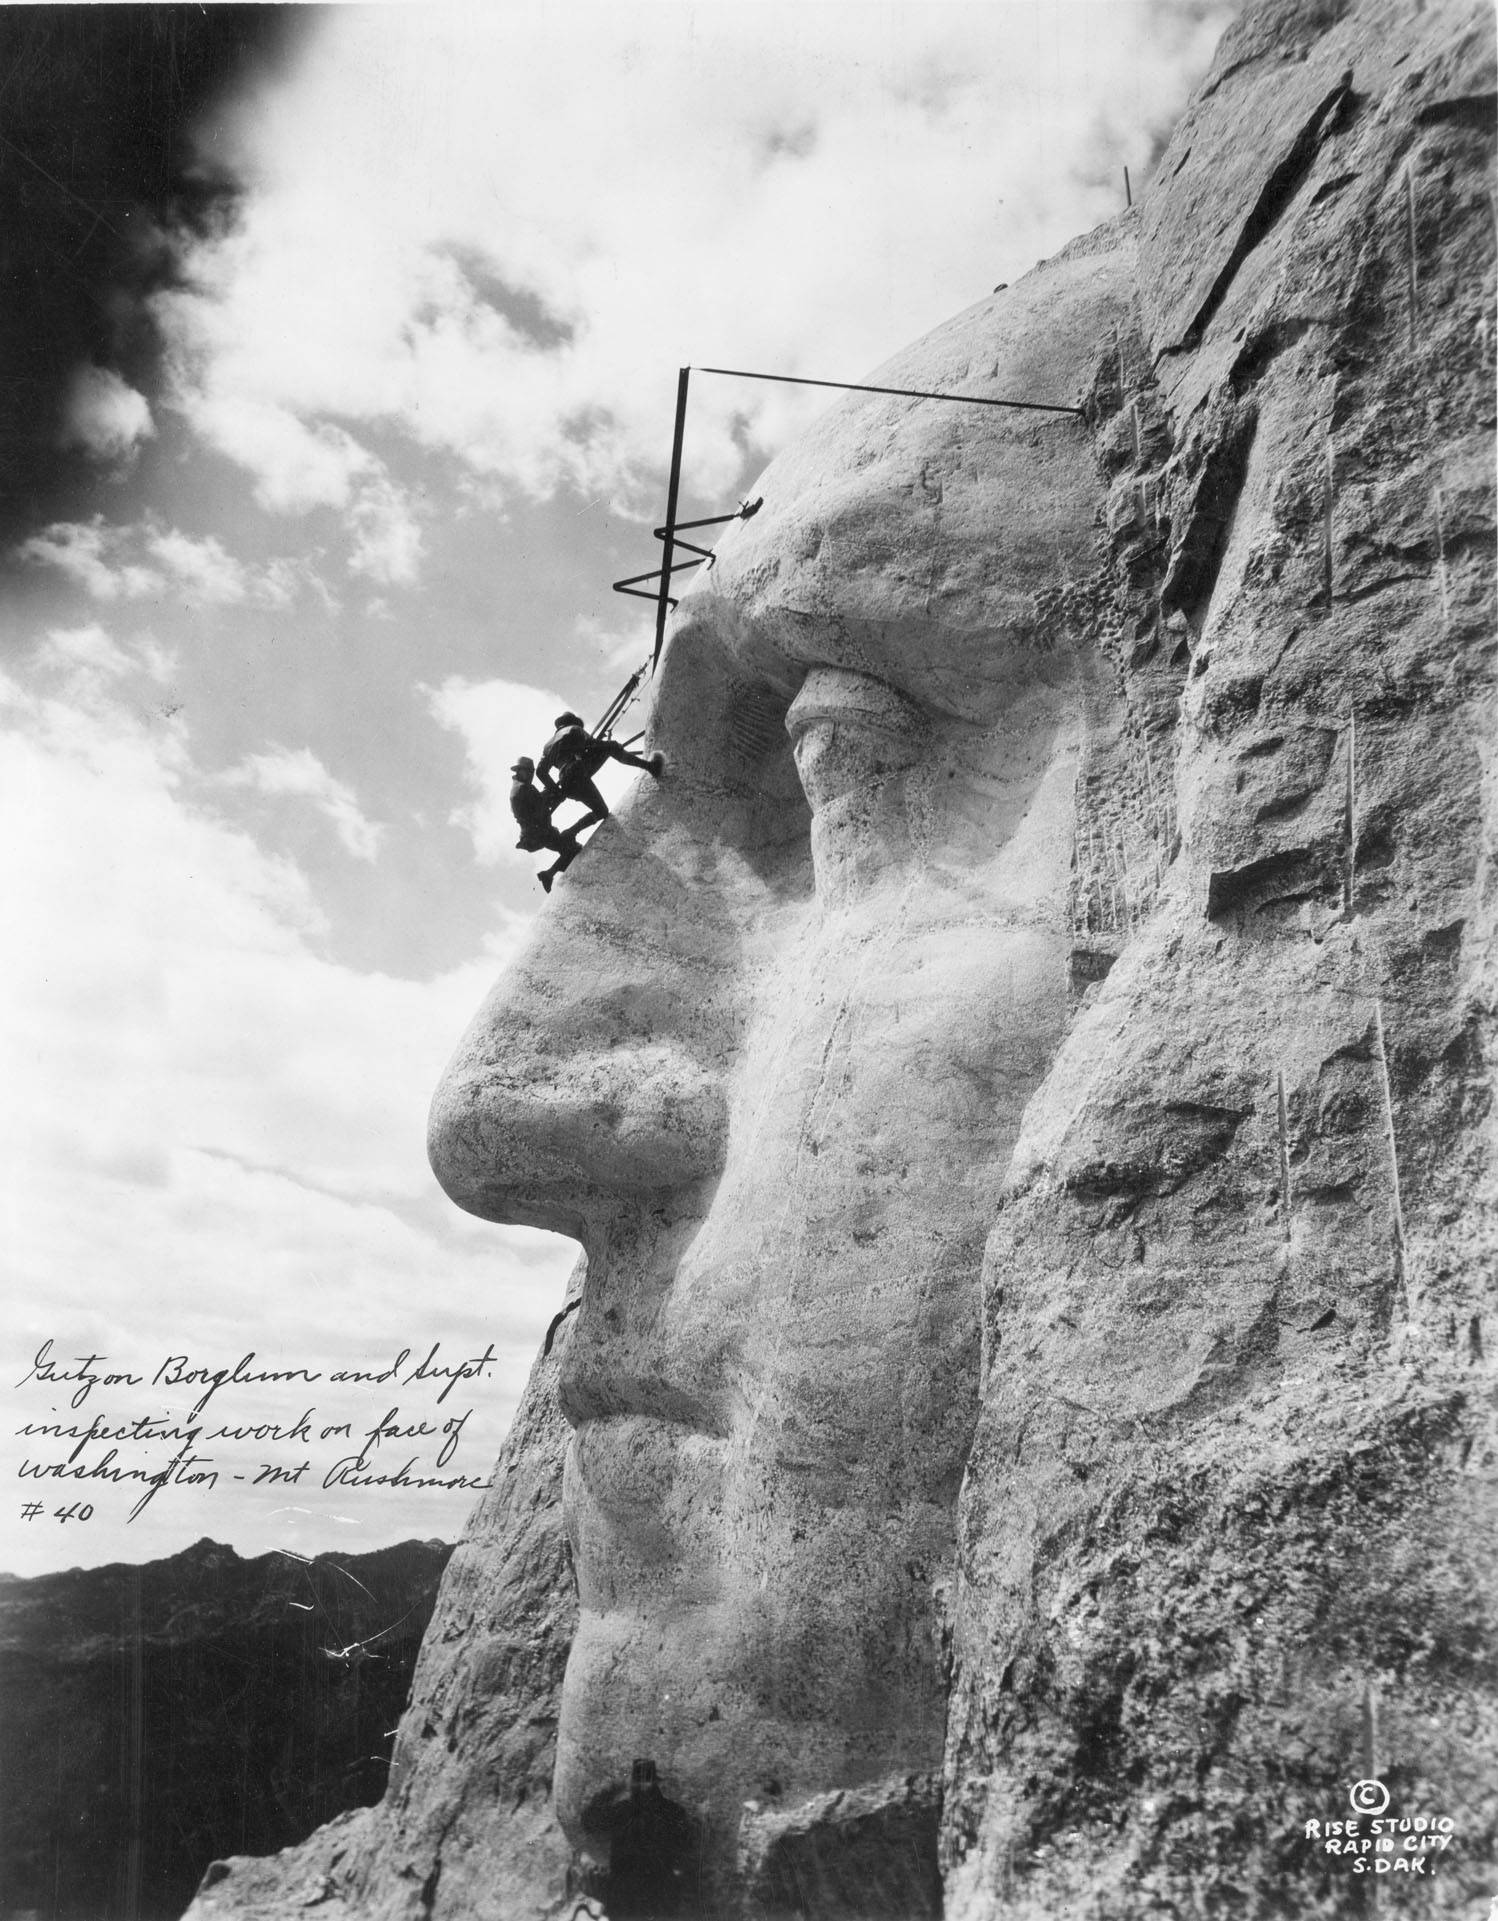 Before-Mount Rushmore